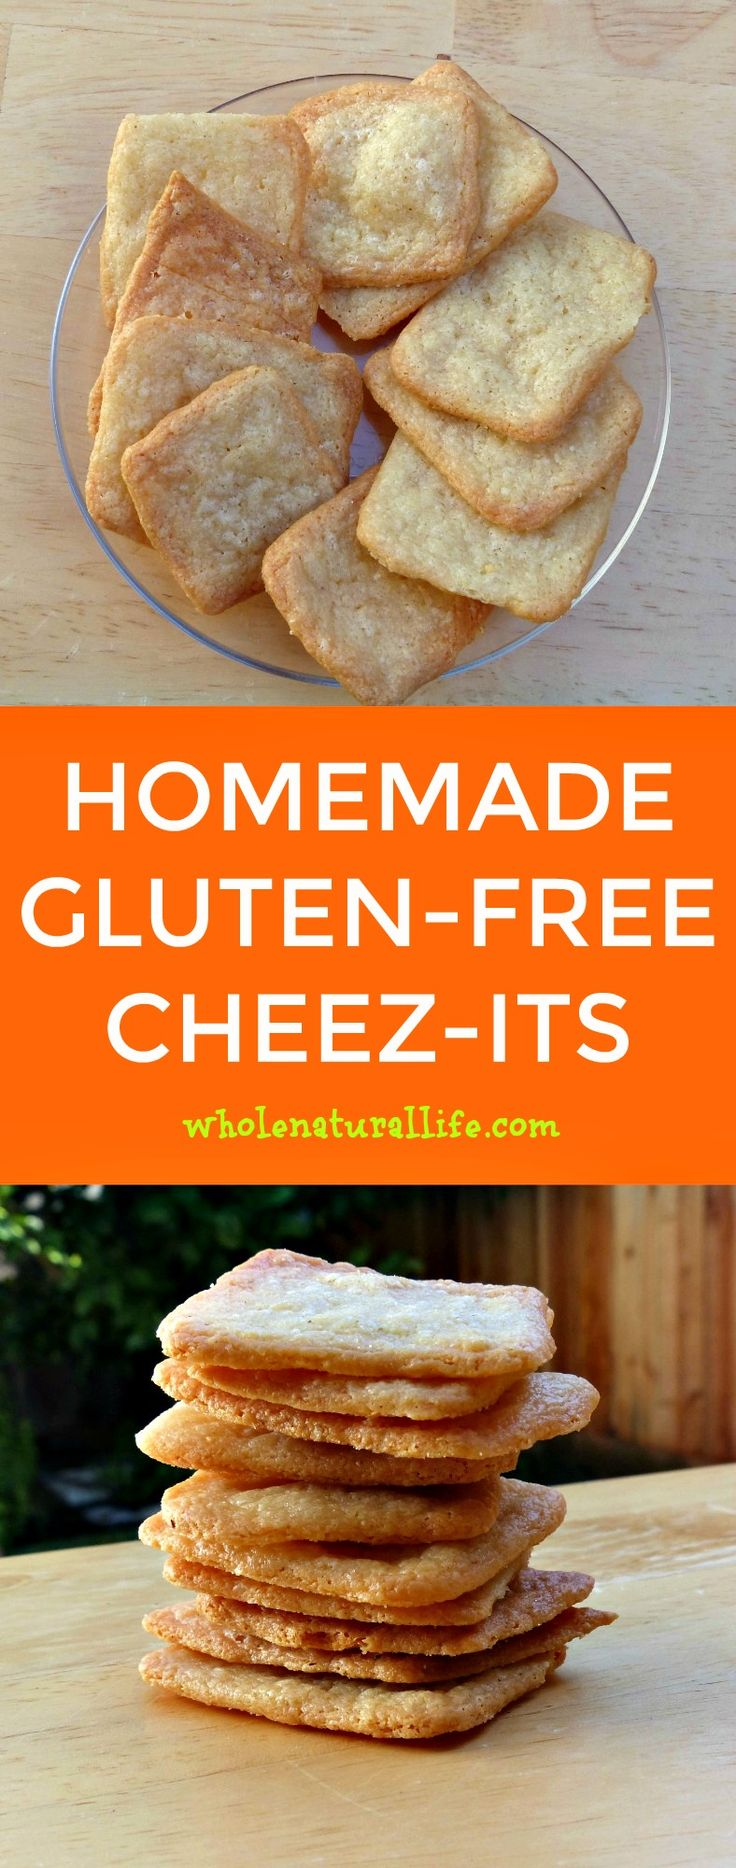 489 best Snack Ideas images on Pinterest